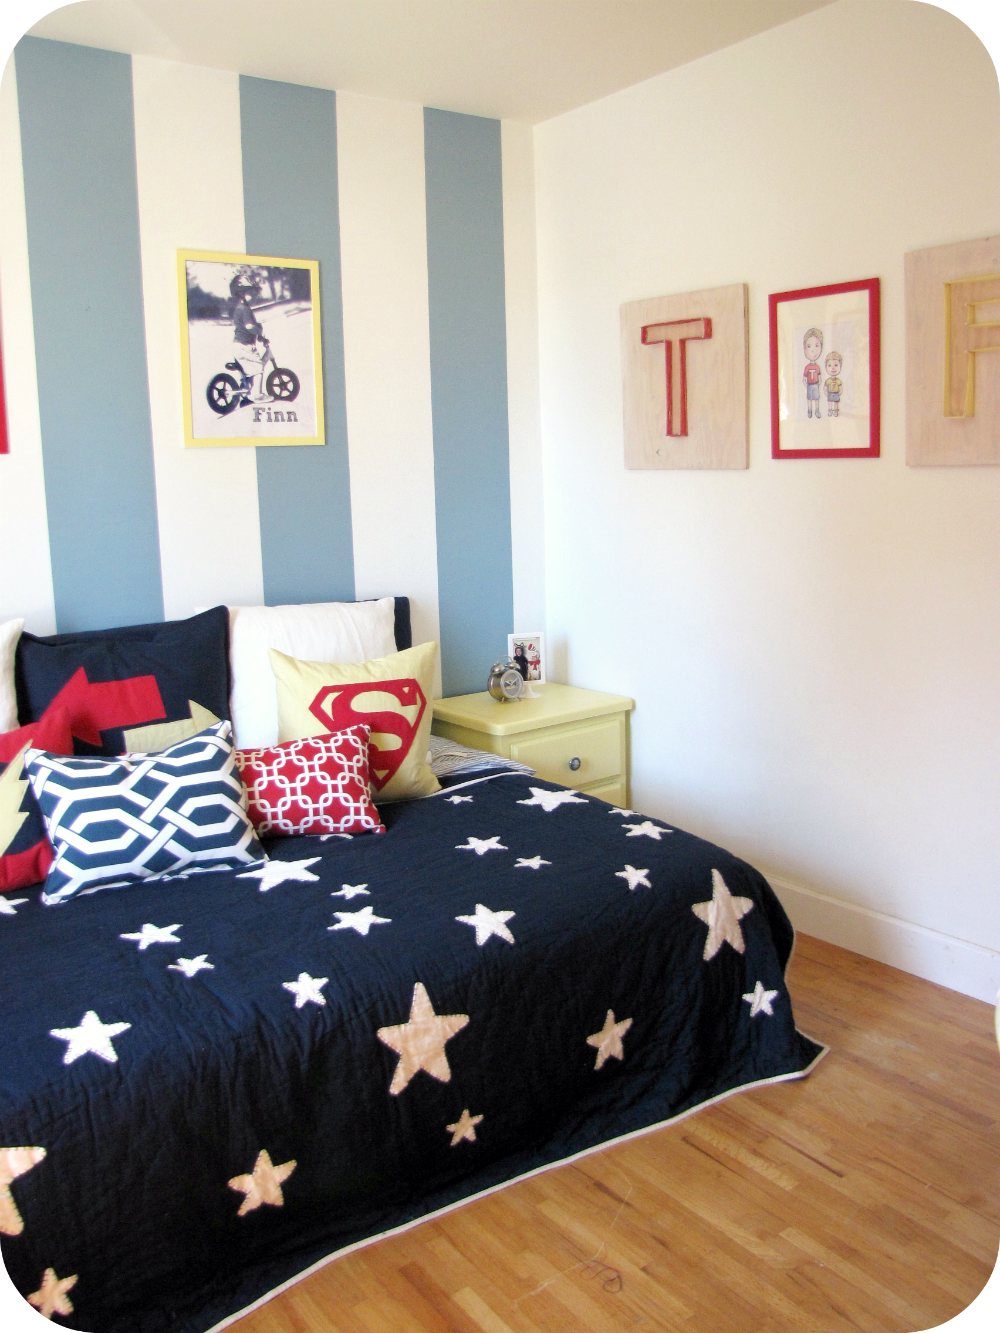 My house of giggles a red yellow and blue striped shared - Bedroom for boy ...